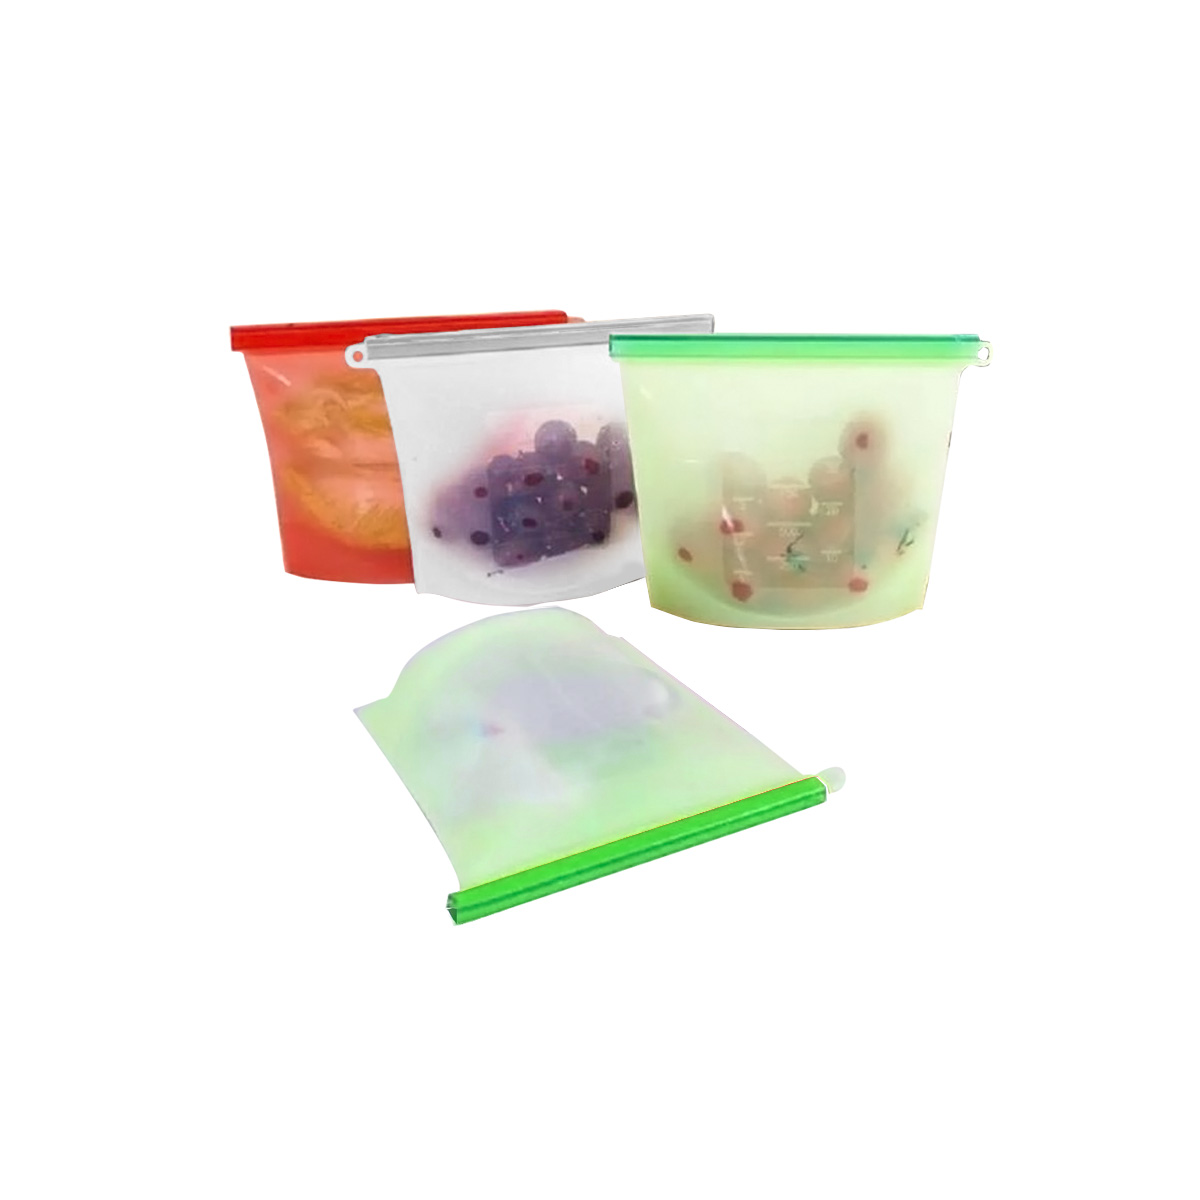 IAG-Reusable-Silicone-Baggies2-1200×1200